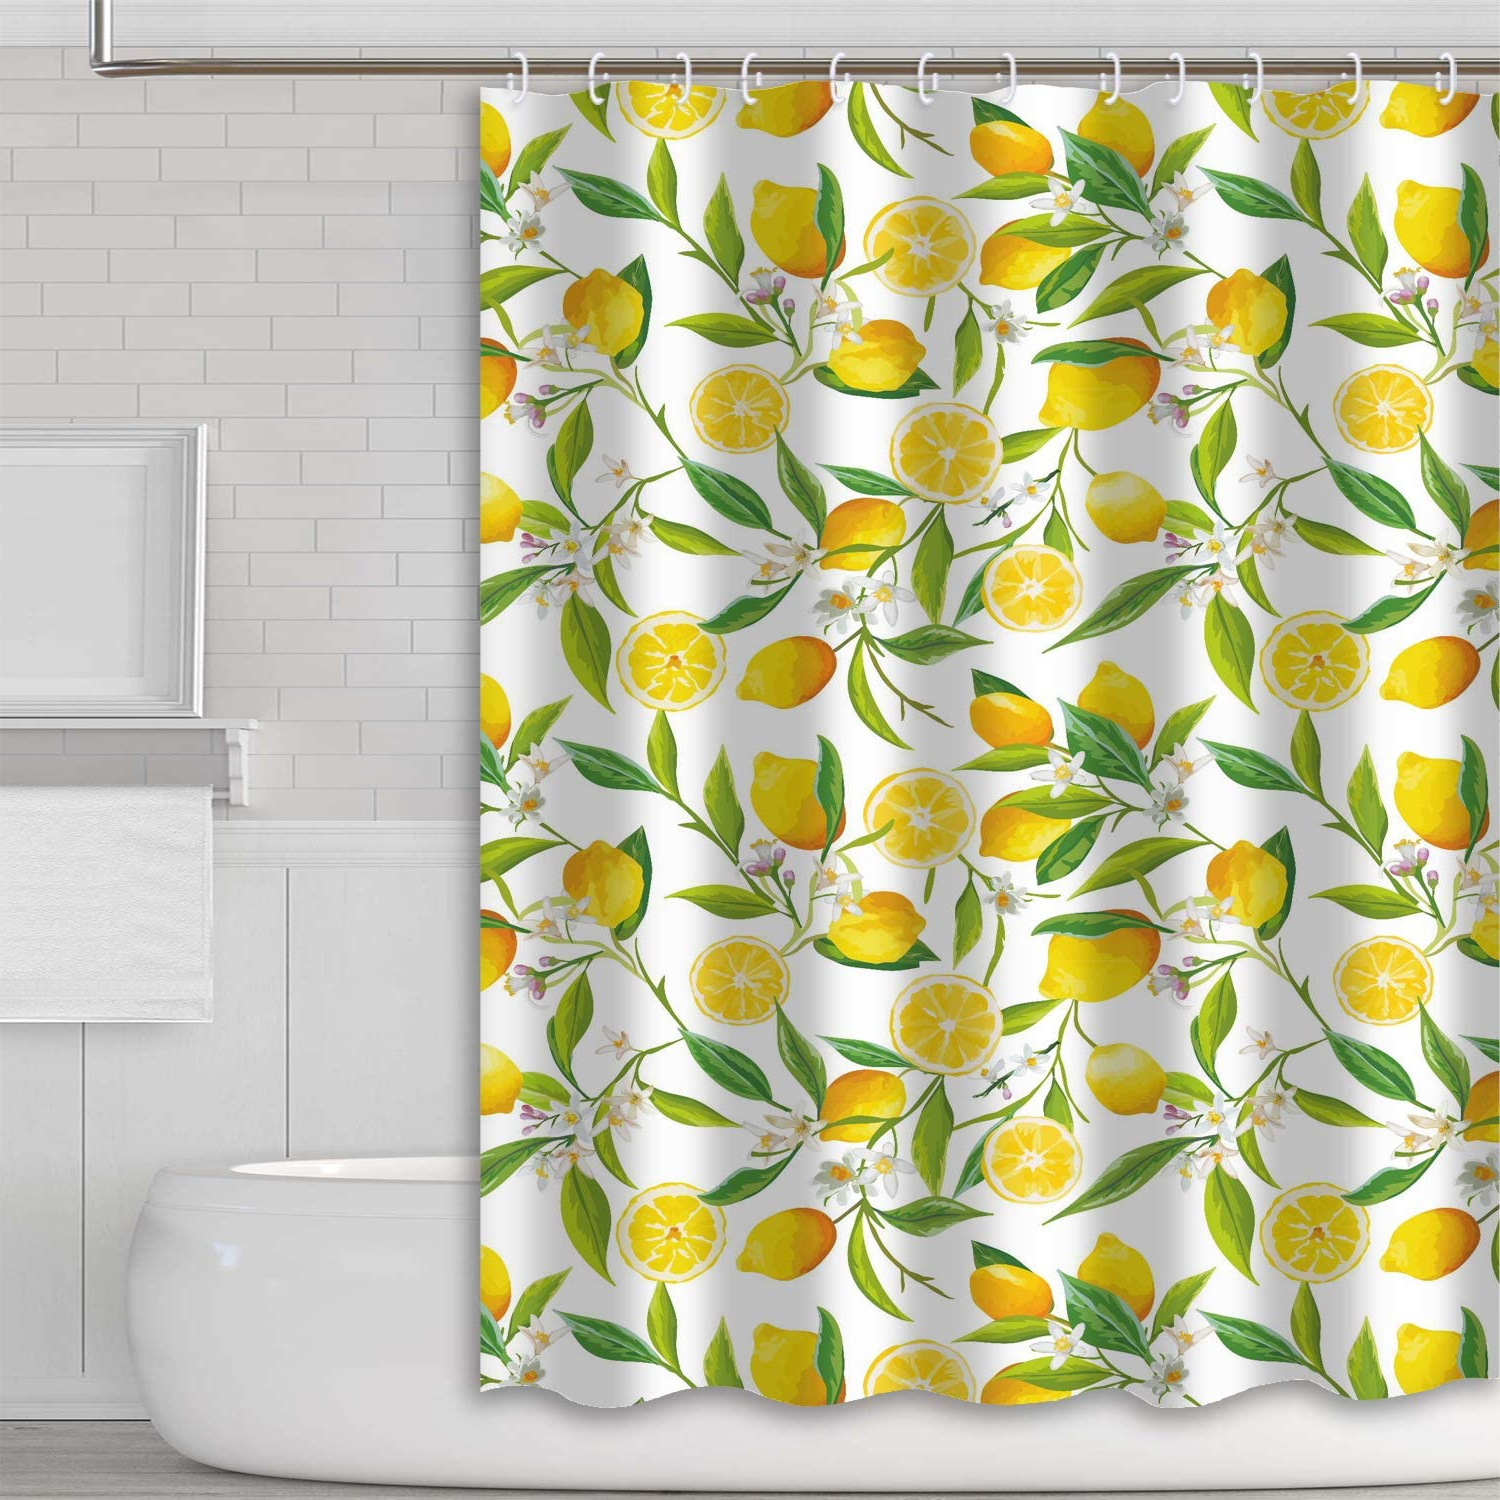 Blended Fabric Fruity Bouquets Wall Hangings Inside 2020 Tititex Yellow Lemon Shower Curtain Sets Fresh Fruit Waterproof Polyester Fabric 69 X 70 Inch Bathroom Decor With Hooks (View 18 of 20)